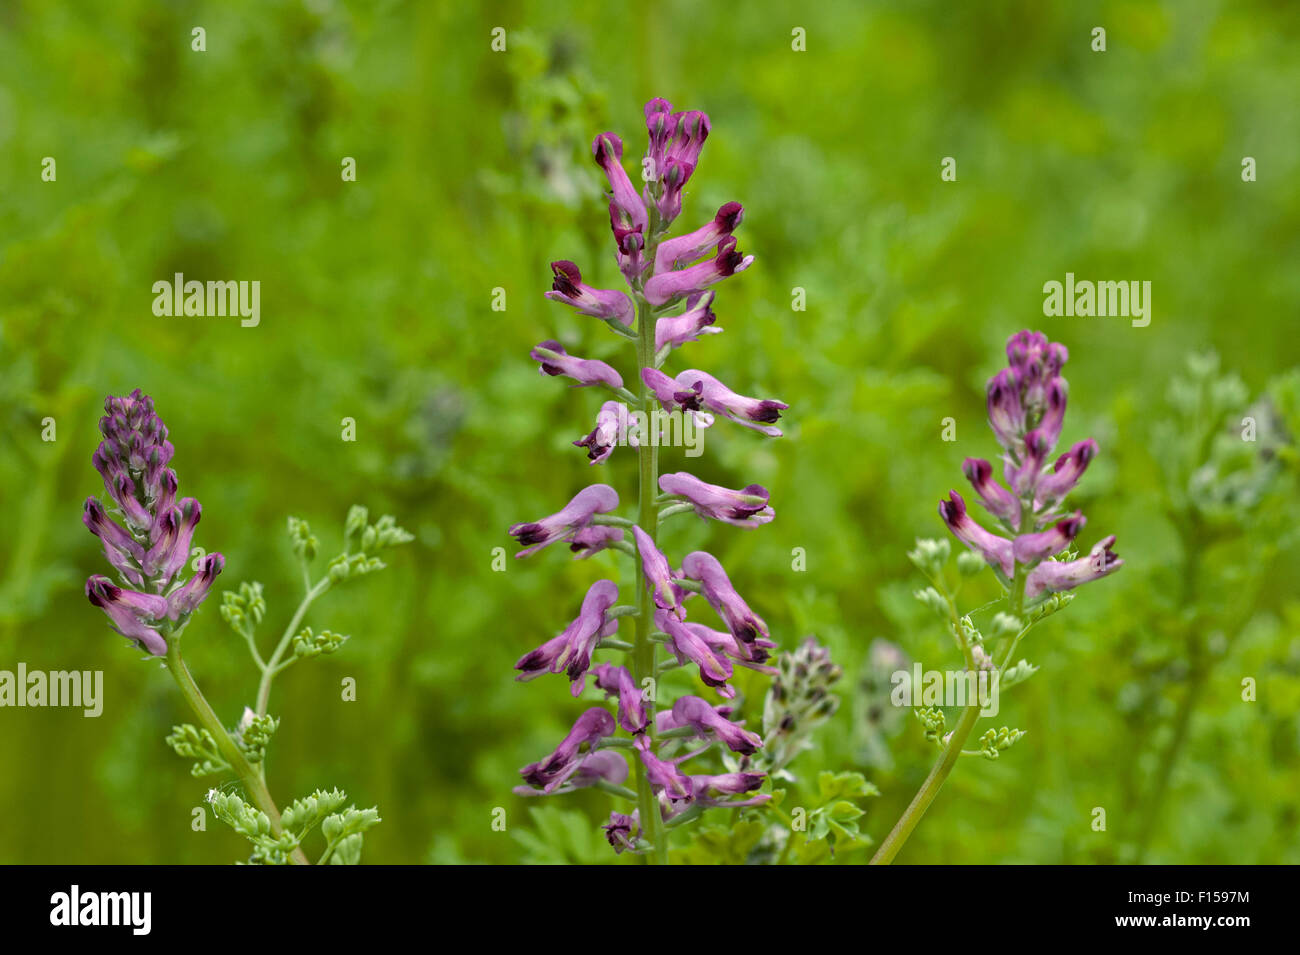 Common fumitory / earth smoke (Fumaria officinalis) in flower - Stock Image